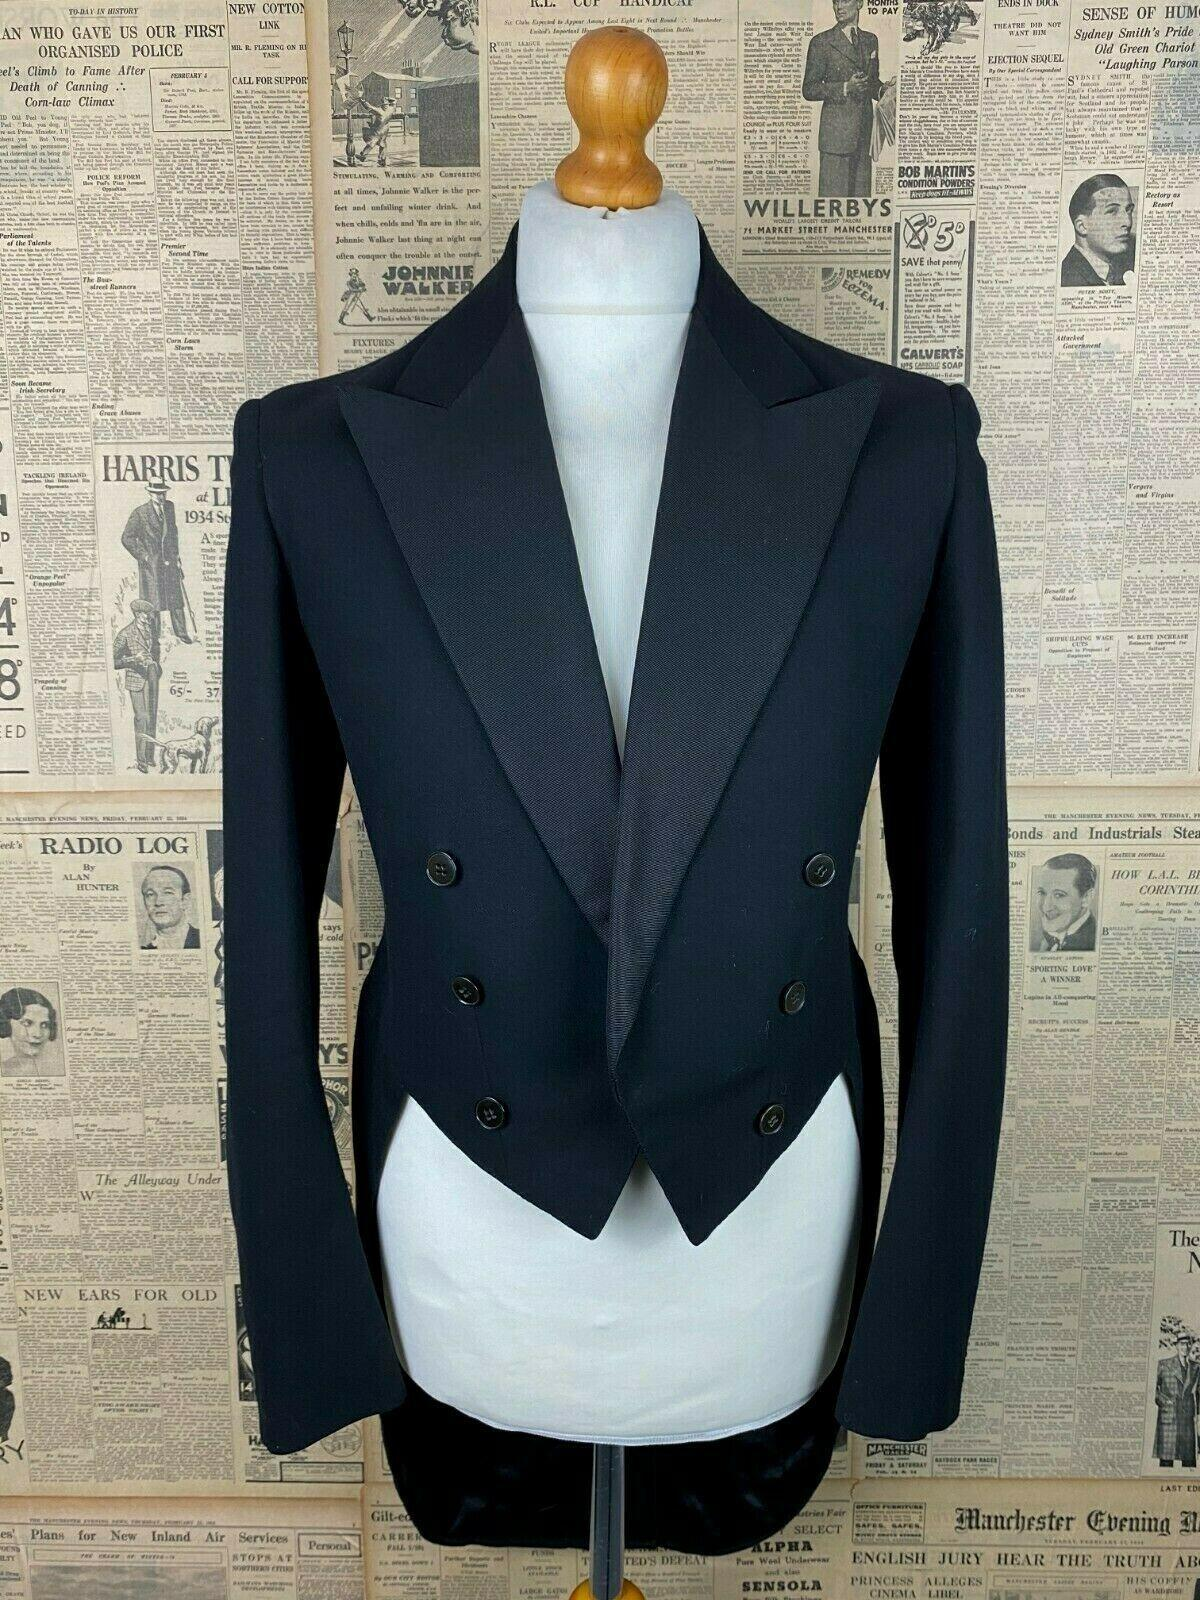 White Tie tailcoats